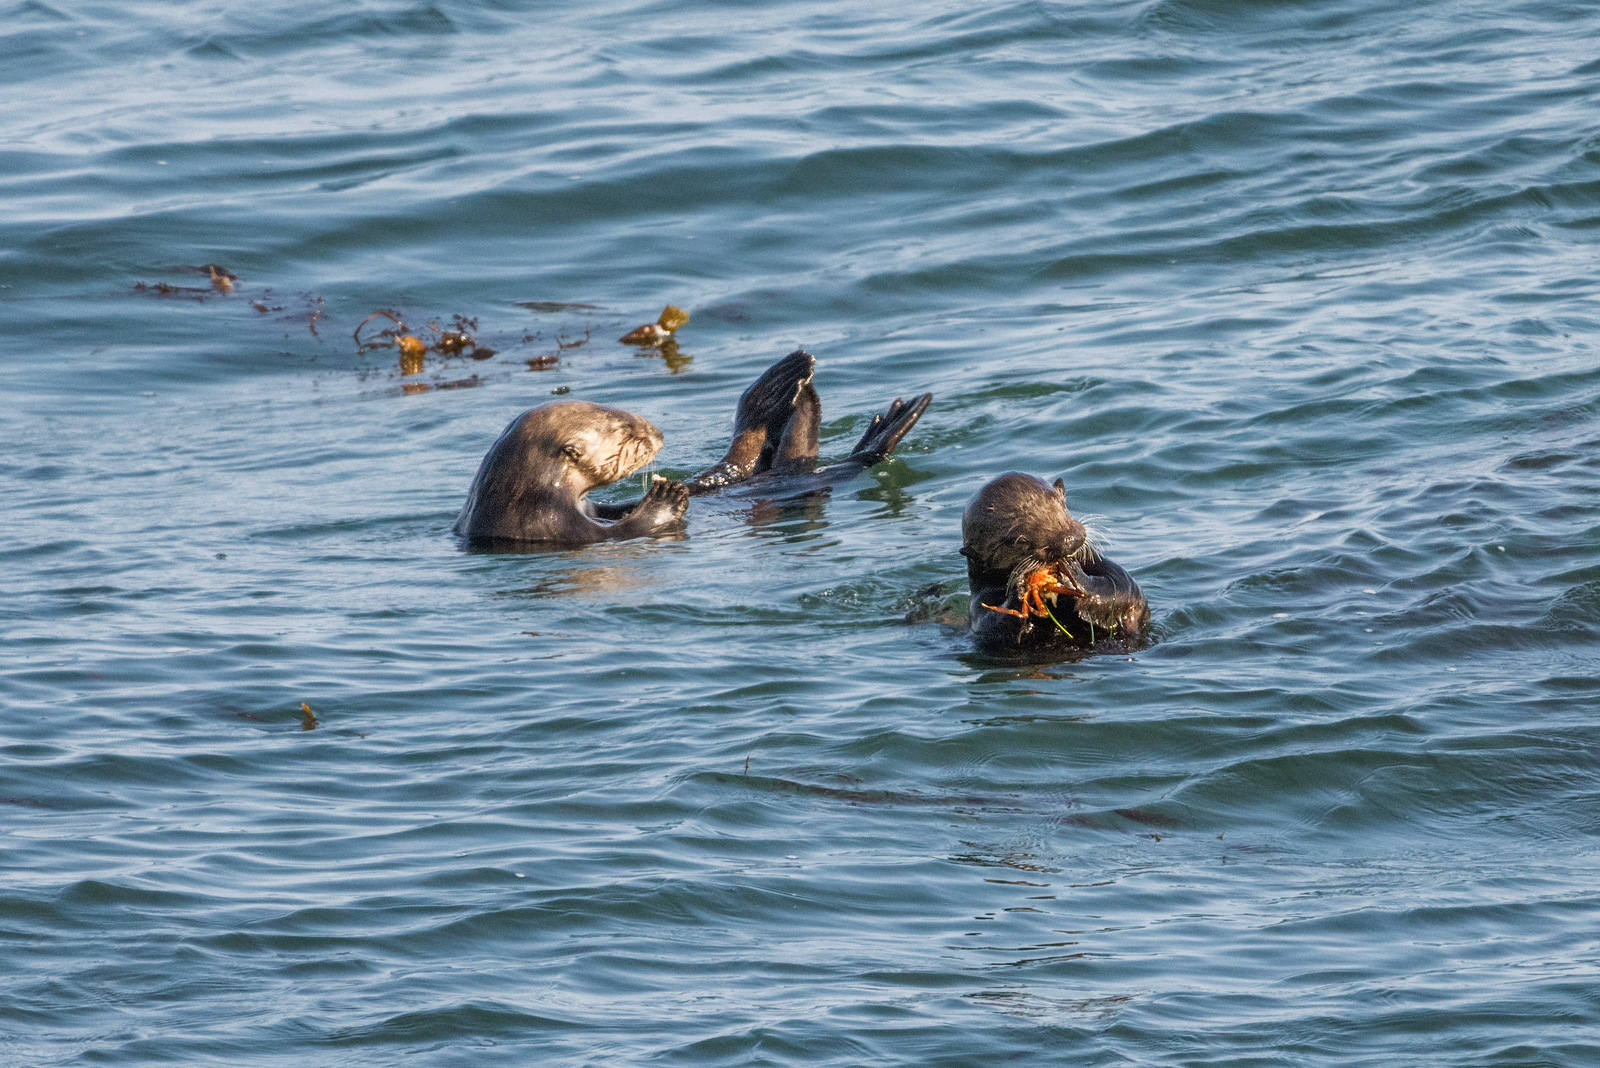 Otters eating crab